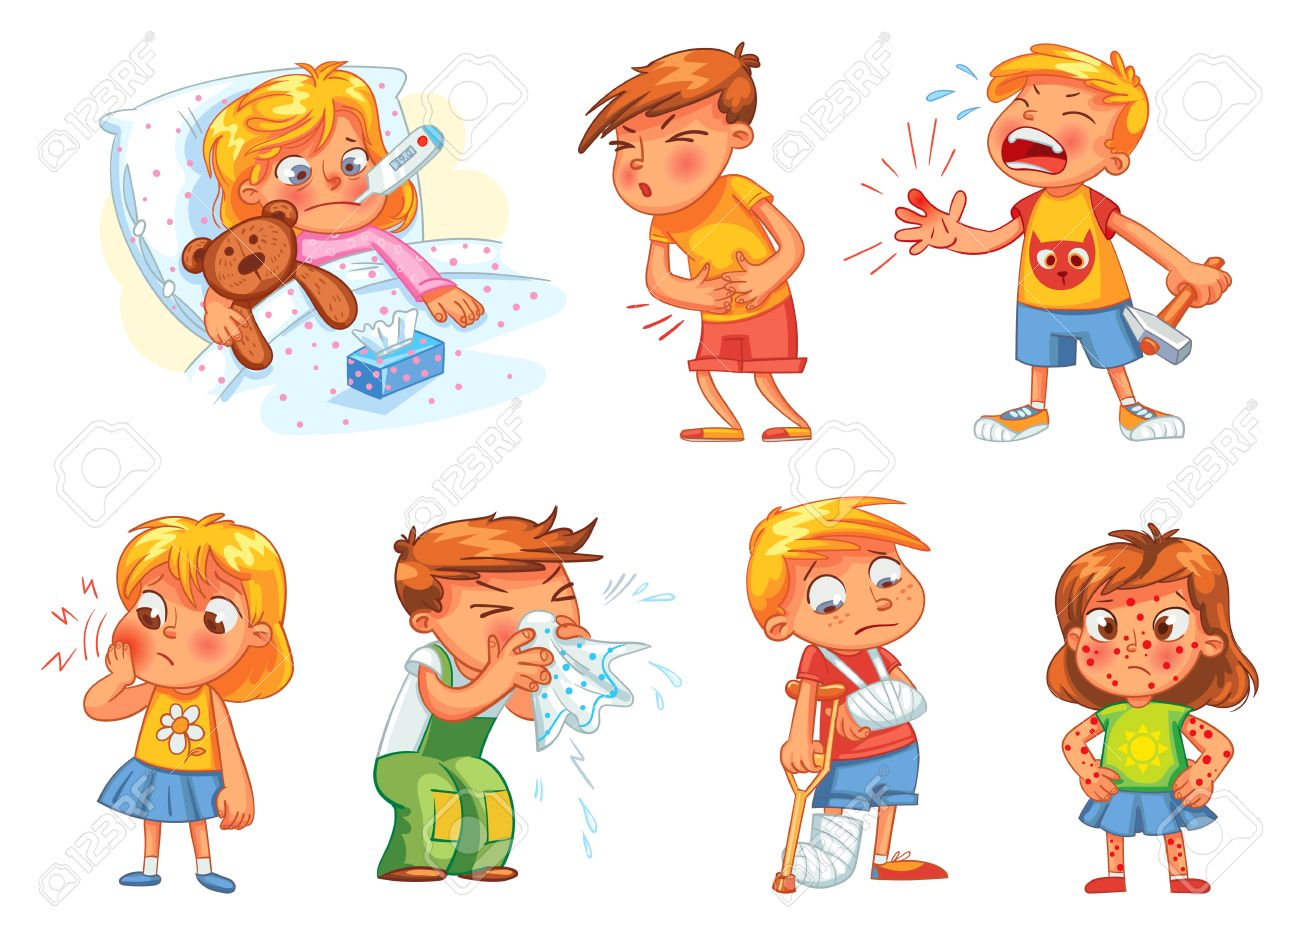 Children get sick. Child has high temperature. Boy hit with hammer on finger. Toothache. Boy's stomach ache. Girl's body rash. Broken limbs. Cold in head. Funny cartoon character. Vector illustration - 69019227